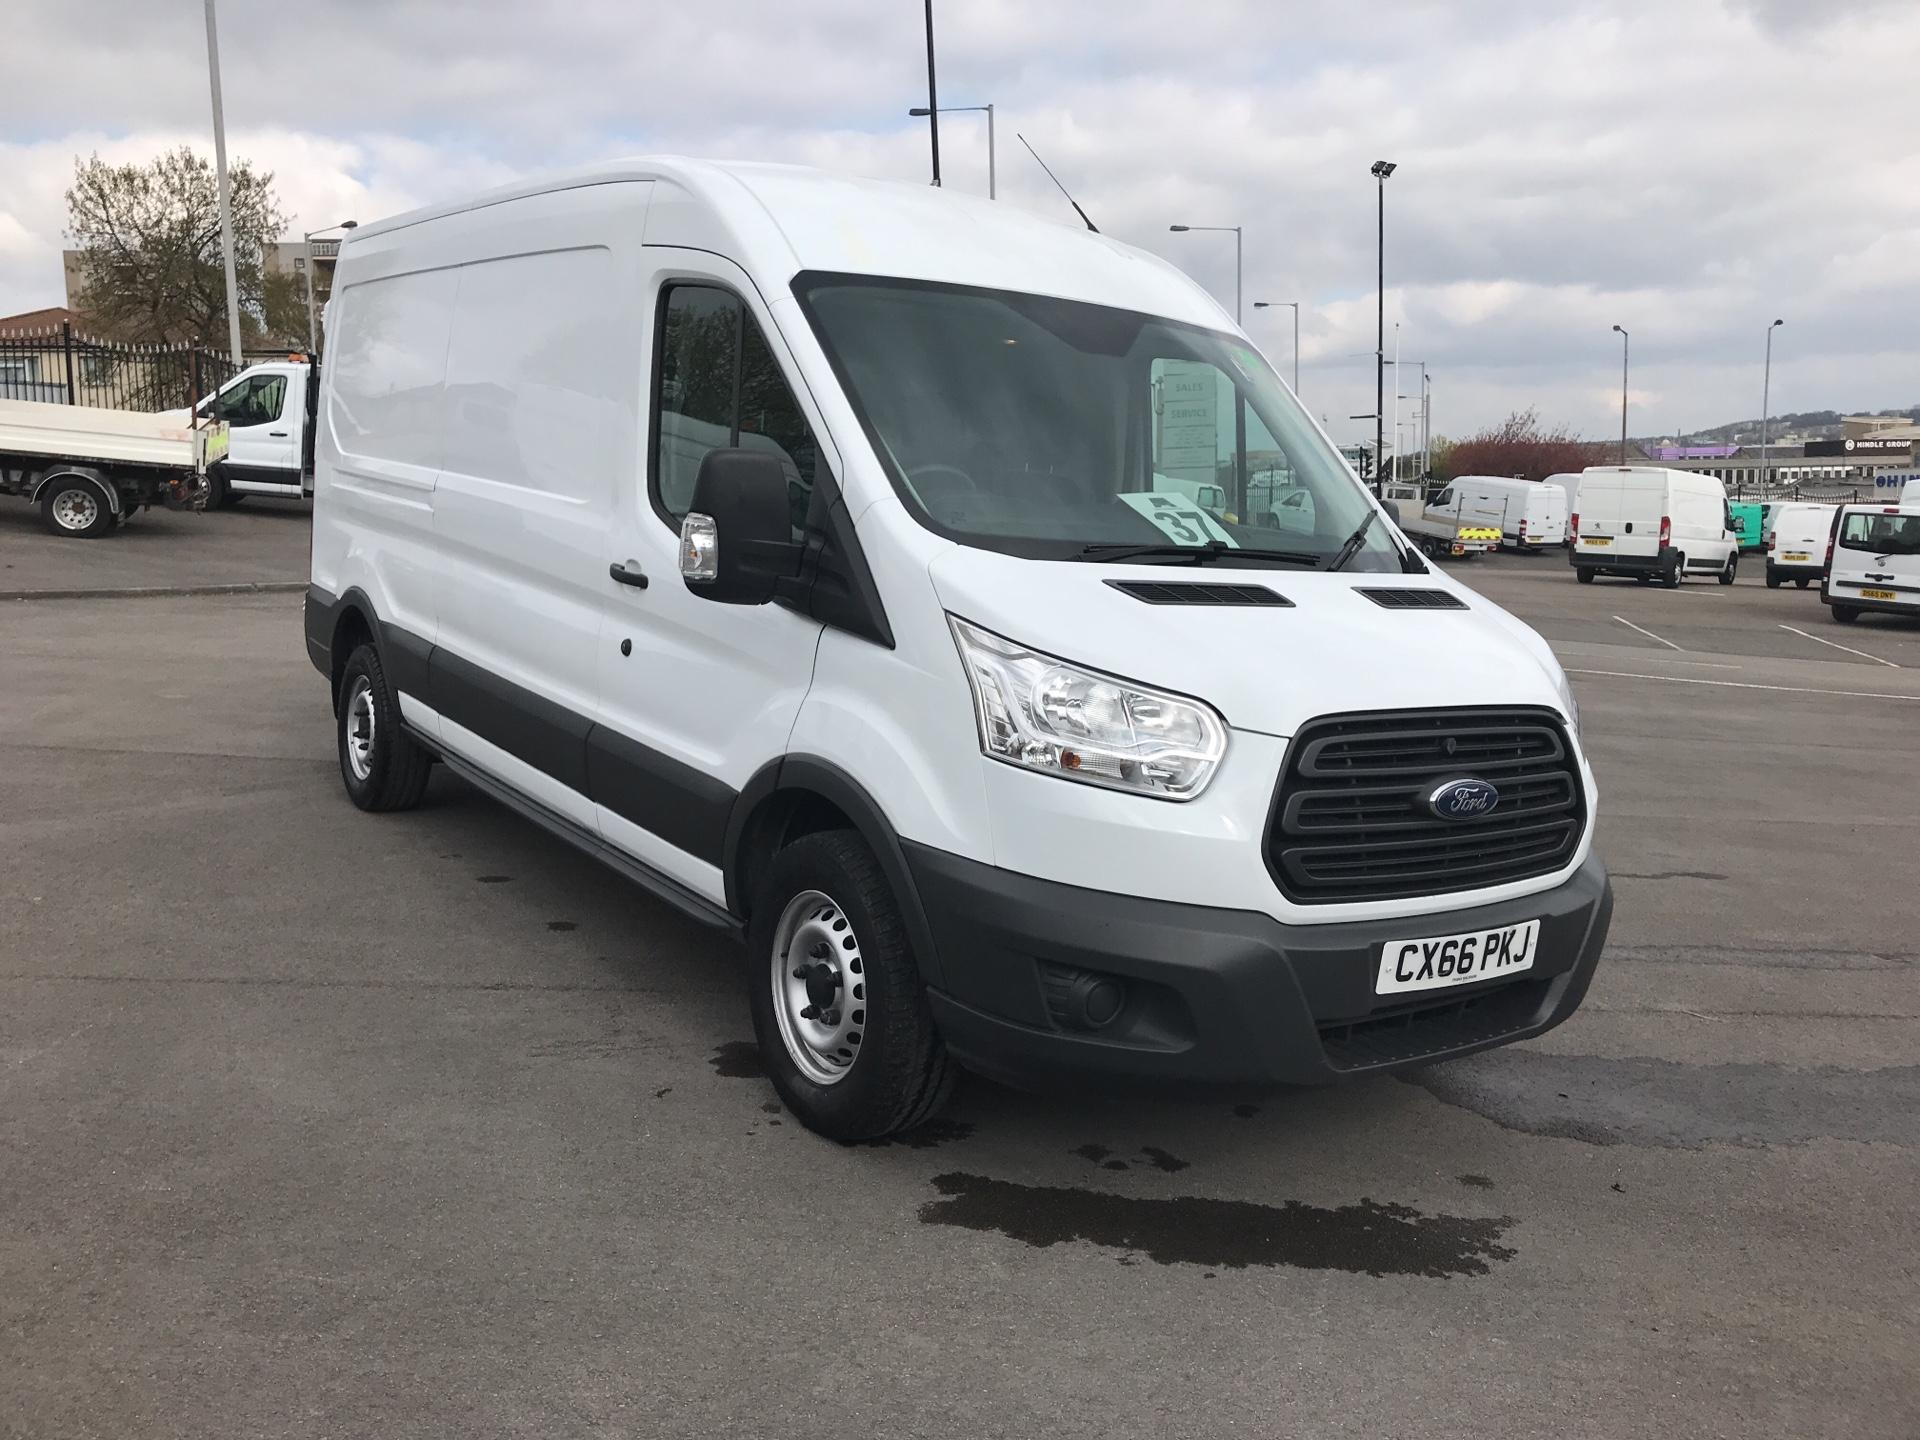 2016 Ford Transit 2.2 Tdci 125Ps H2 Van (CX66PKJ)